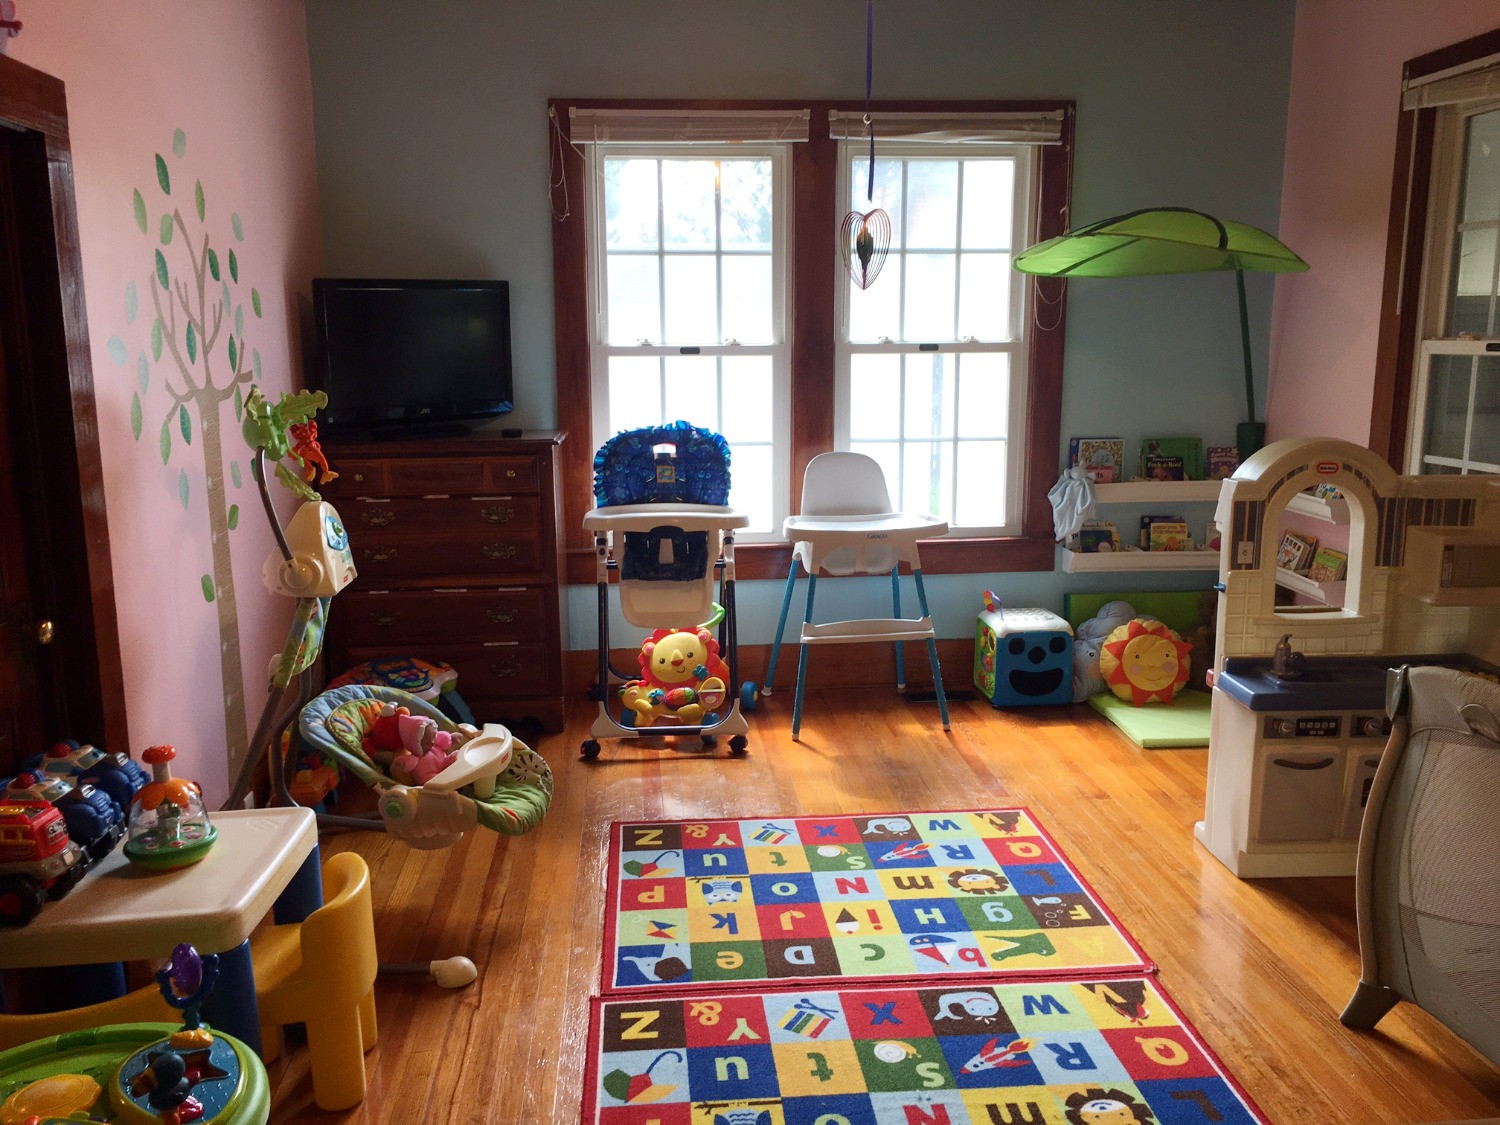 The infant room has been updated with new flooring, blue and pink walls, and a reading corner.